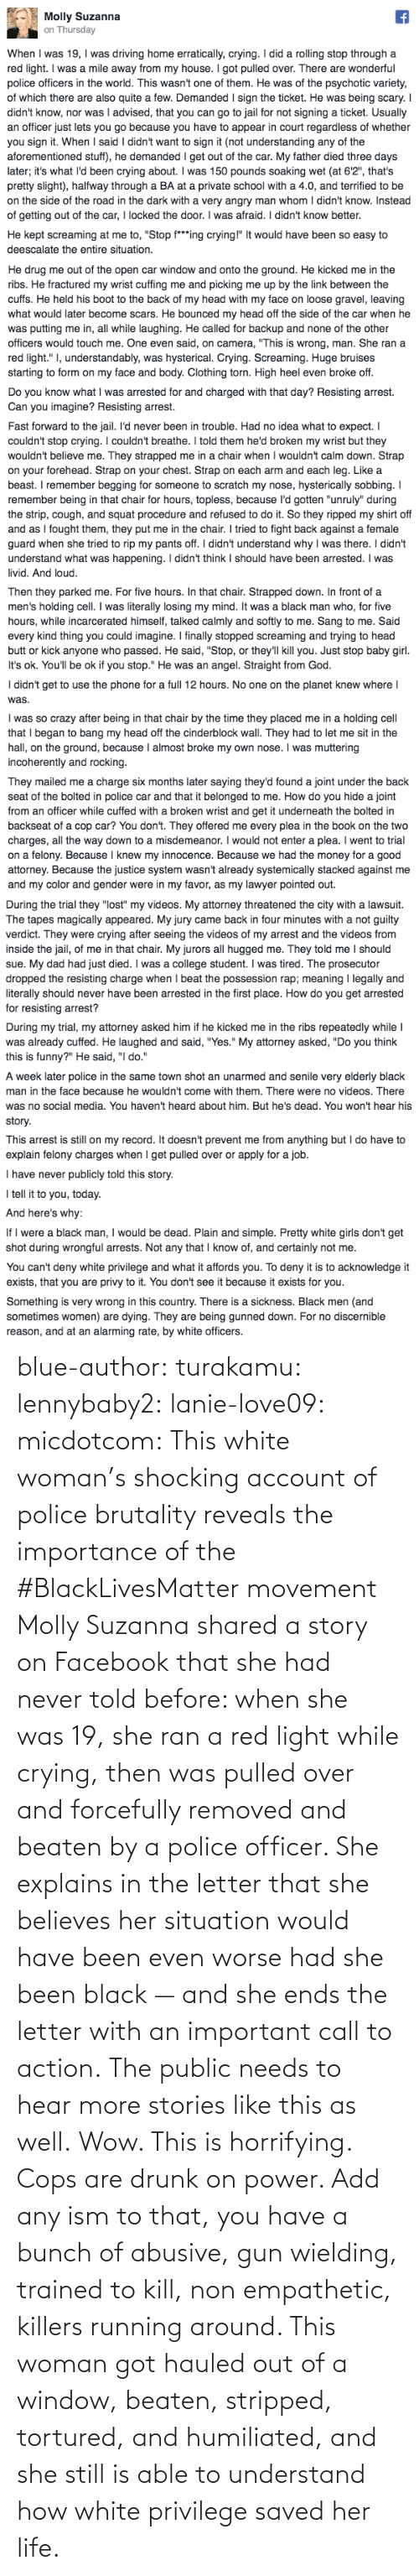 officer: blue-author: turakamu:  lennybaby2:  lanie-love09:  micdotcom:  This white woman's shocking account of police brutality reveals the importance of the #BlackLivesMatter movement Molly Suzanna shared a story on Facebook that she had never told before: when she was 19, she ran a red light while crying, then was pulled over and forcefully removed and beaten by a police officer. She explains in the letter that she believes her situation would have been even worse had she been black — and she ends the letter with an important call to action.  The public needs to hear more stories like this as well.  Wow. This is horrifying.  Cops are drunk on power. Add any ism to that, you have a bunch of abusive, gun wielding, trained to kill, non empathetic, killers running around.    This woman got hauled out of a window, beaten, stripped, tortured, and humiliated, and she still is able to understand how white privilege saved her life.